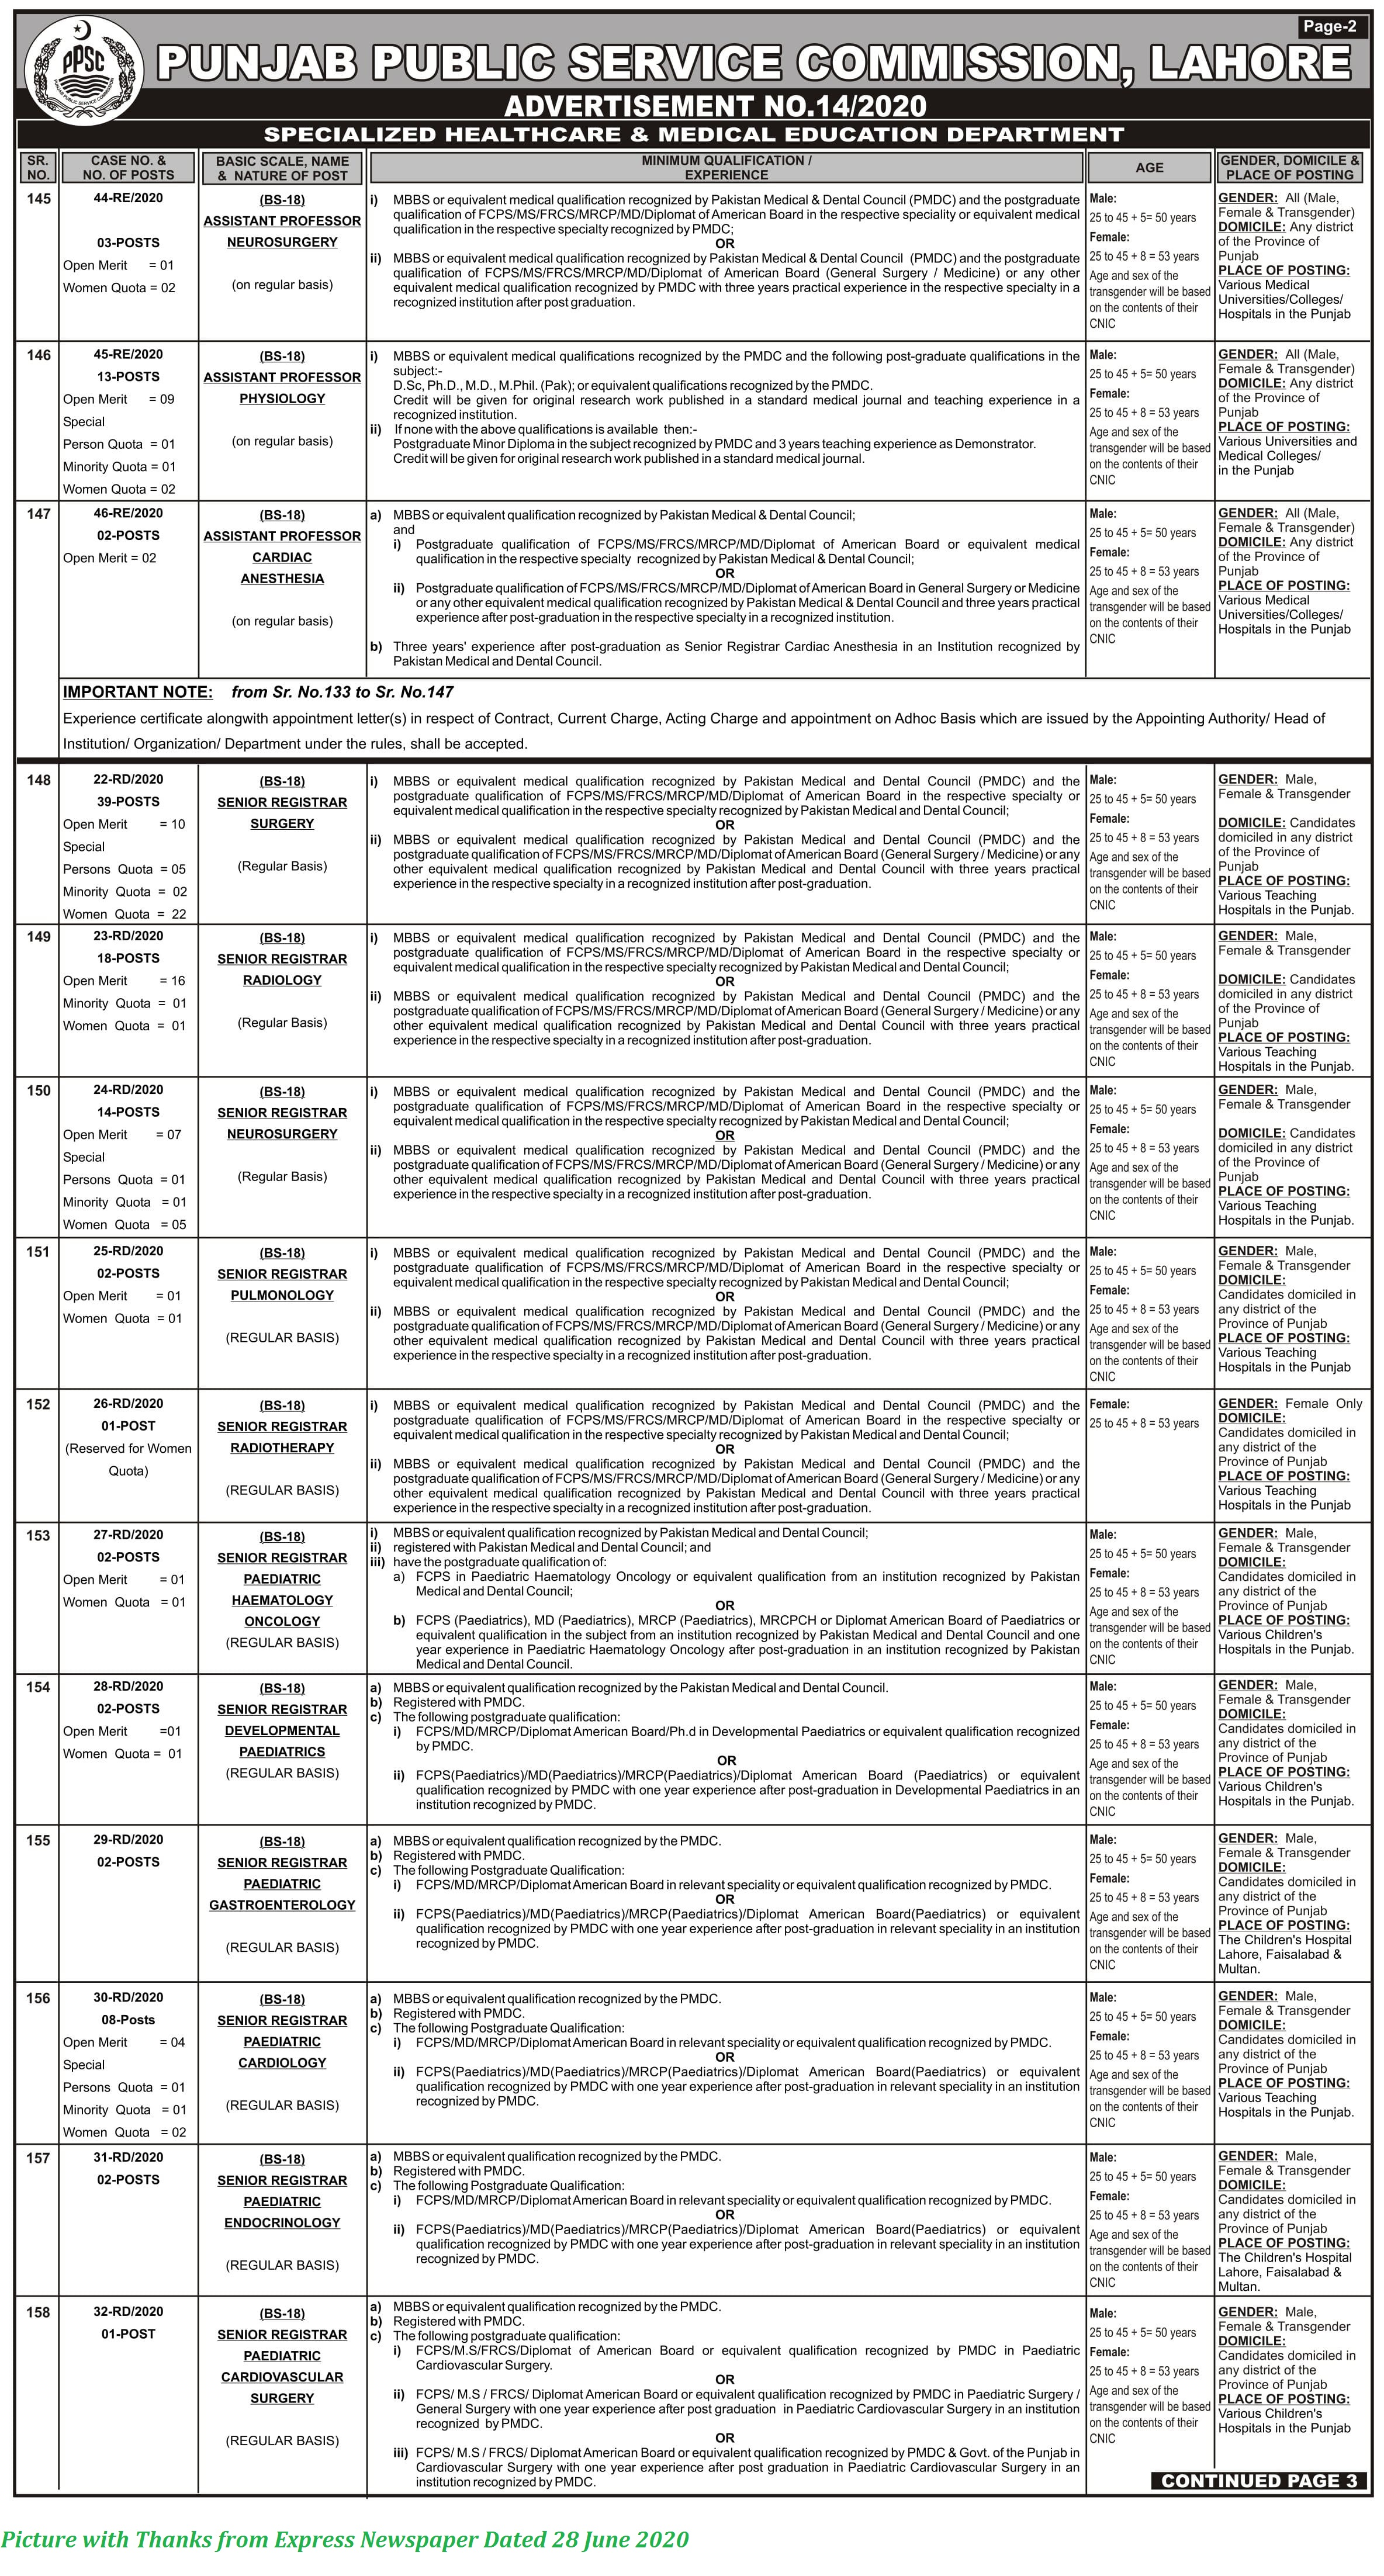 PPSC Jobs 2020 - Latest PPSC Jobs June 2020 Apply Online Advertisement No. 14/2020